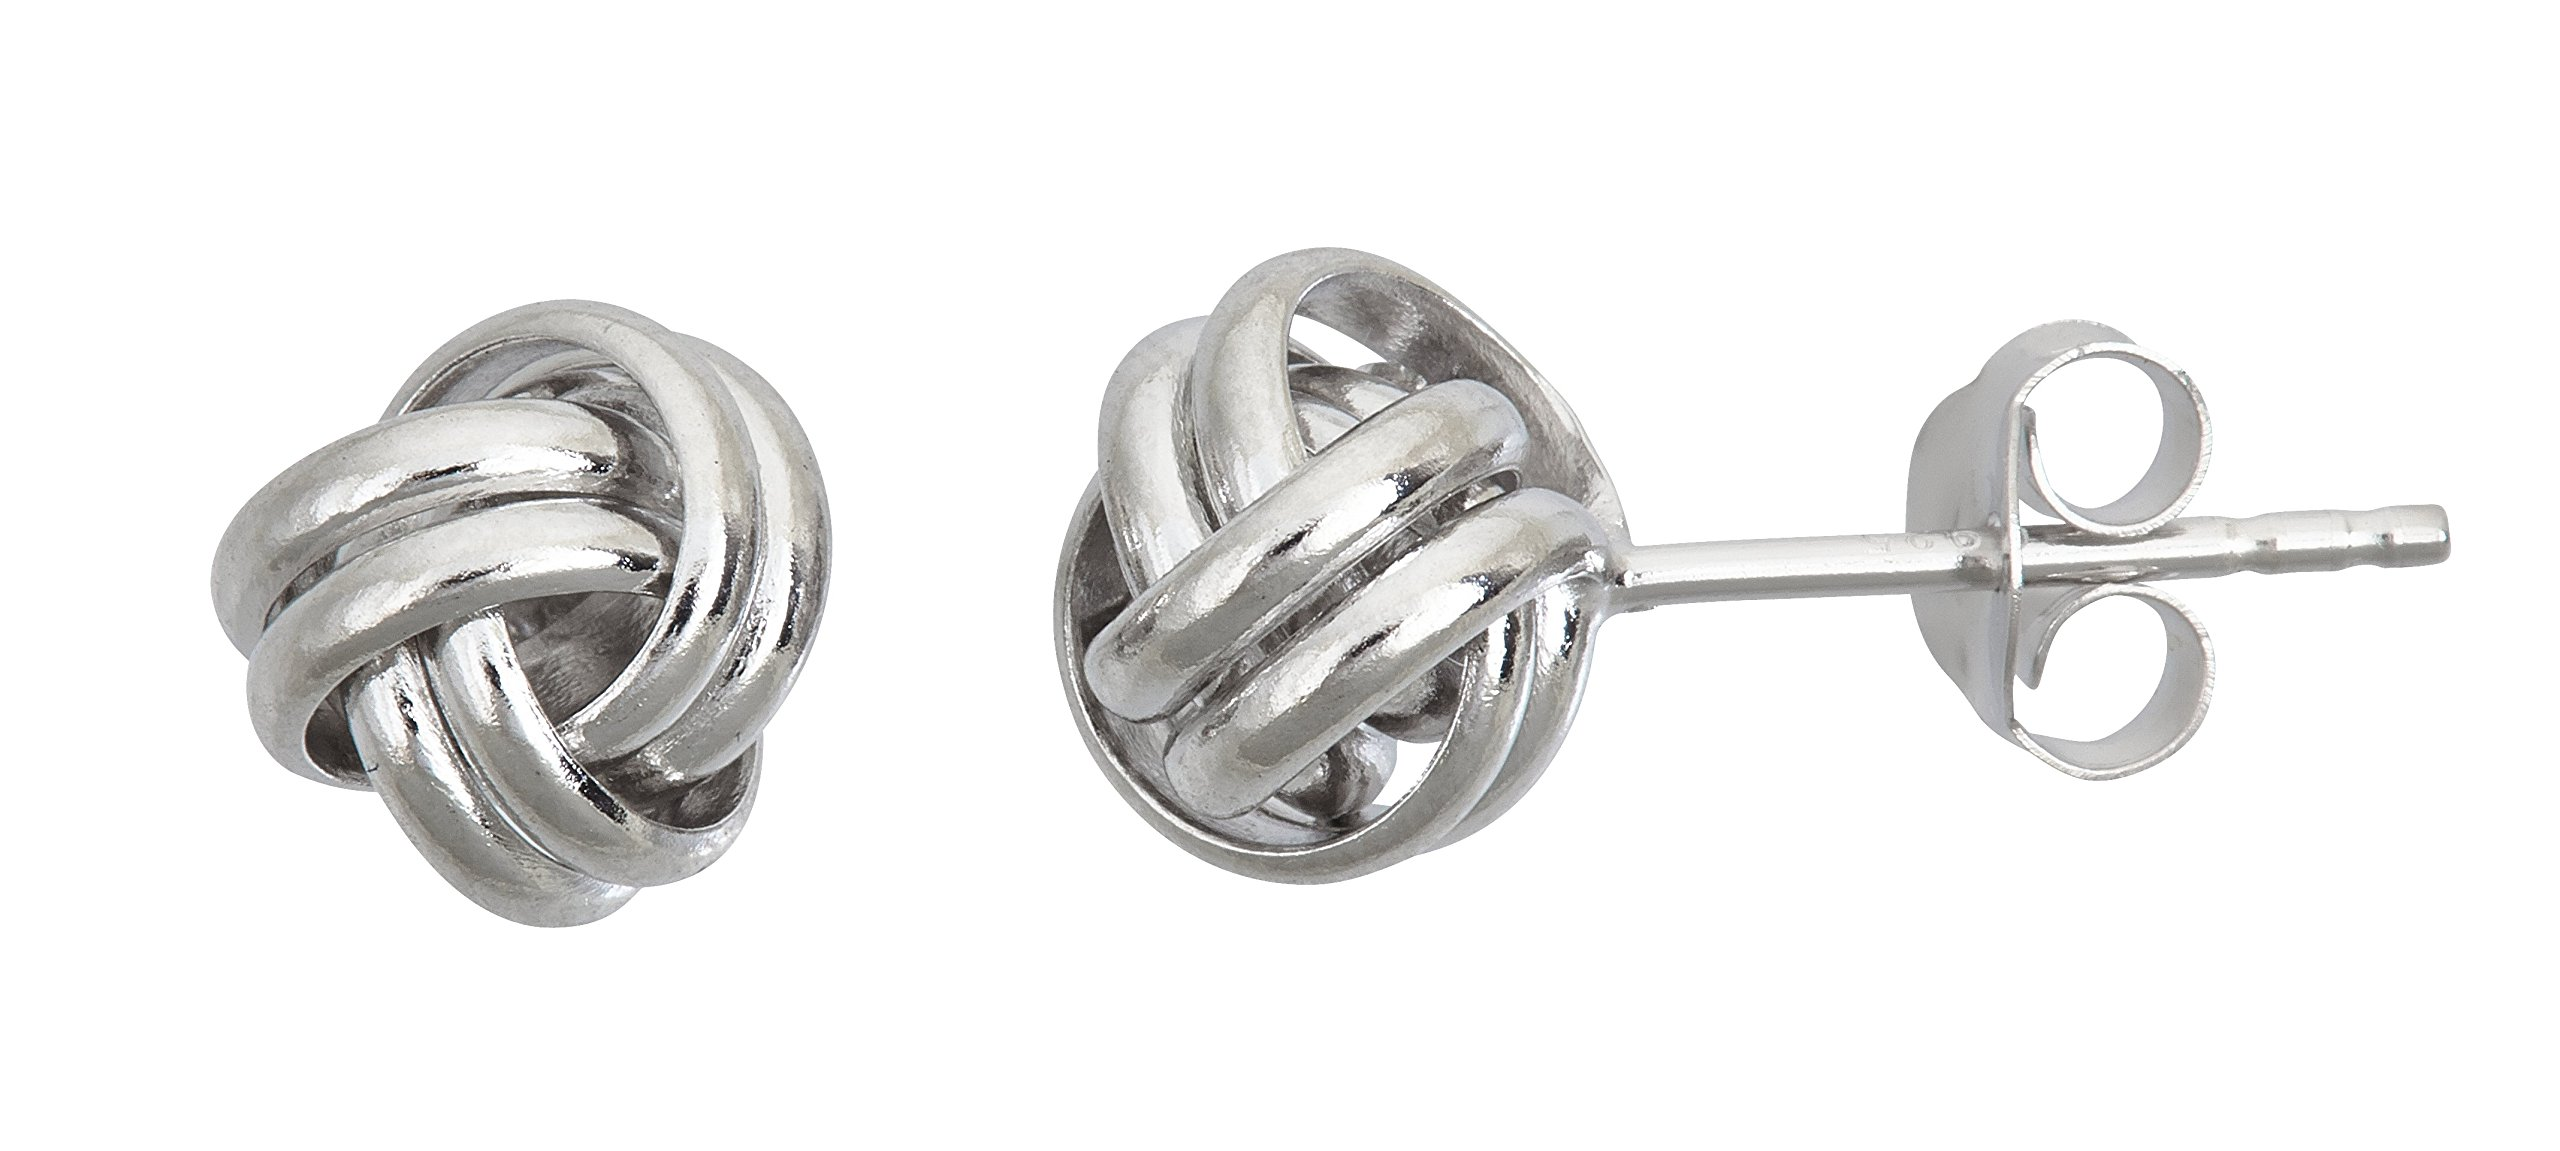 Decadence Unisex Adult Sse458 Sterling Silver 6MM Love Knot Stud Earrings, One Size